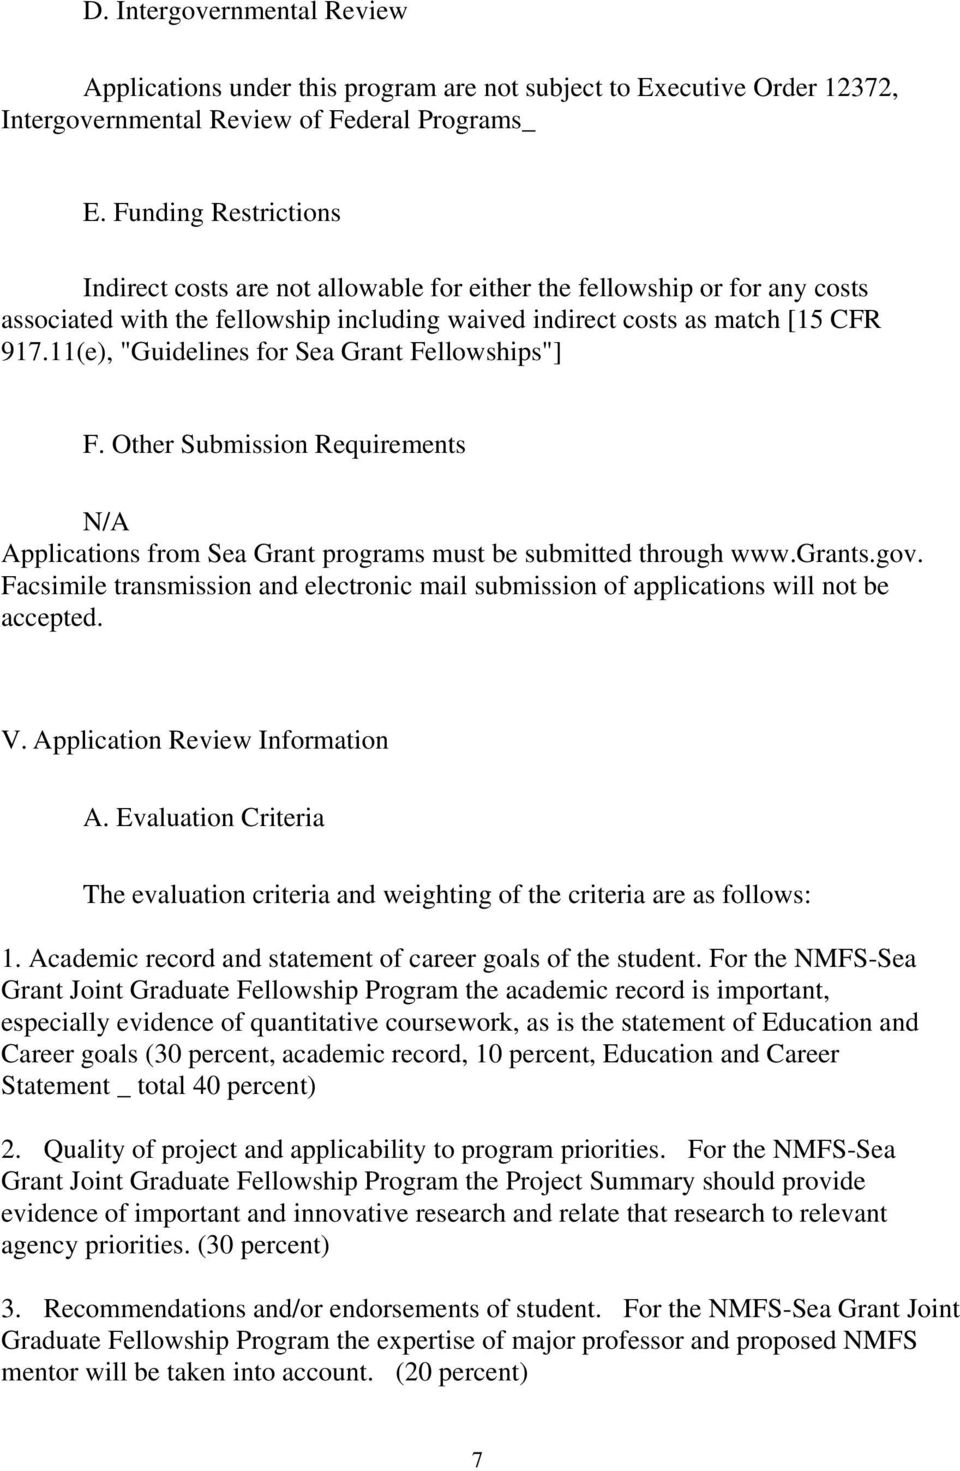 "11(e), ""Guidelines for Sea Grant Fellowships""] F. Other Submission Requirements N/A Applications from Sea Grant programs must be submitted through www.grants.gov."